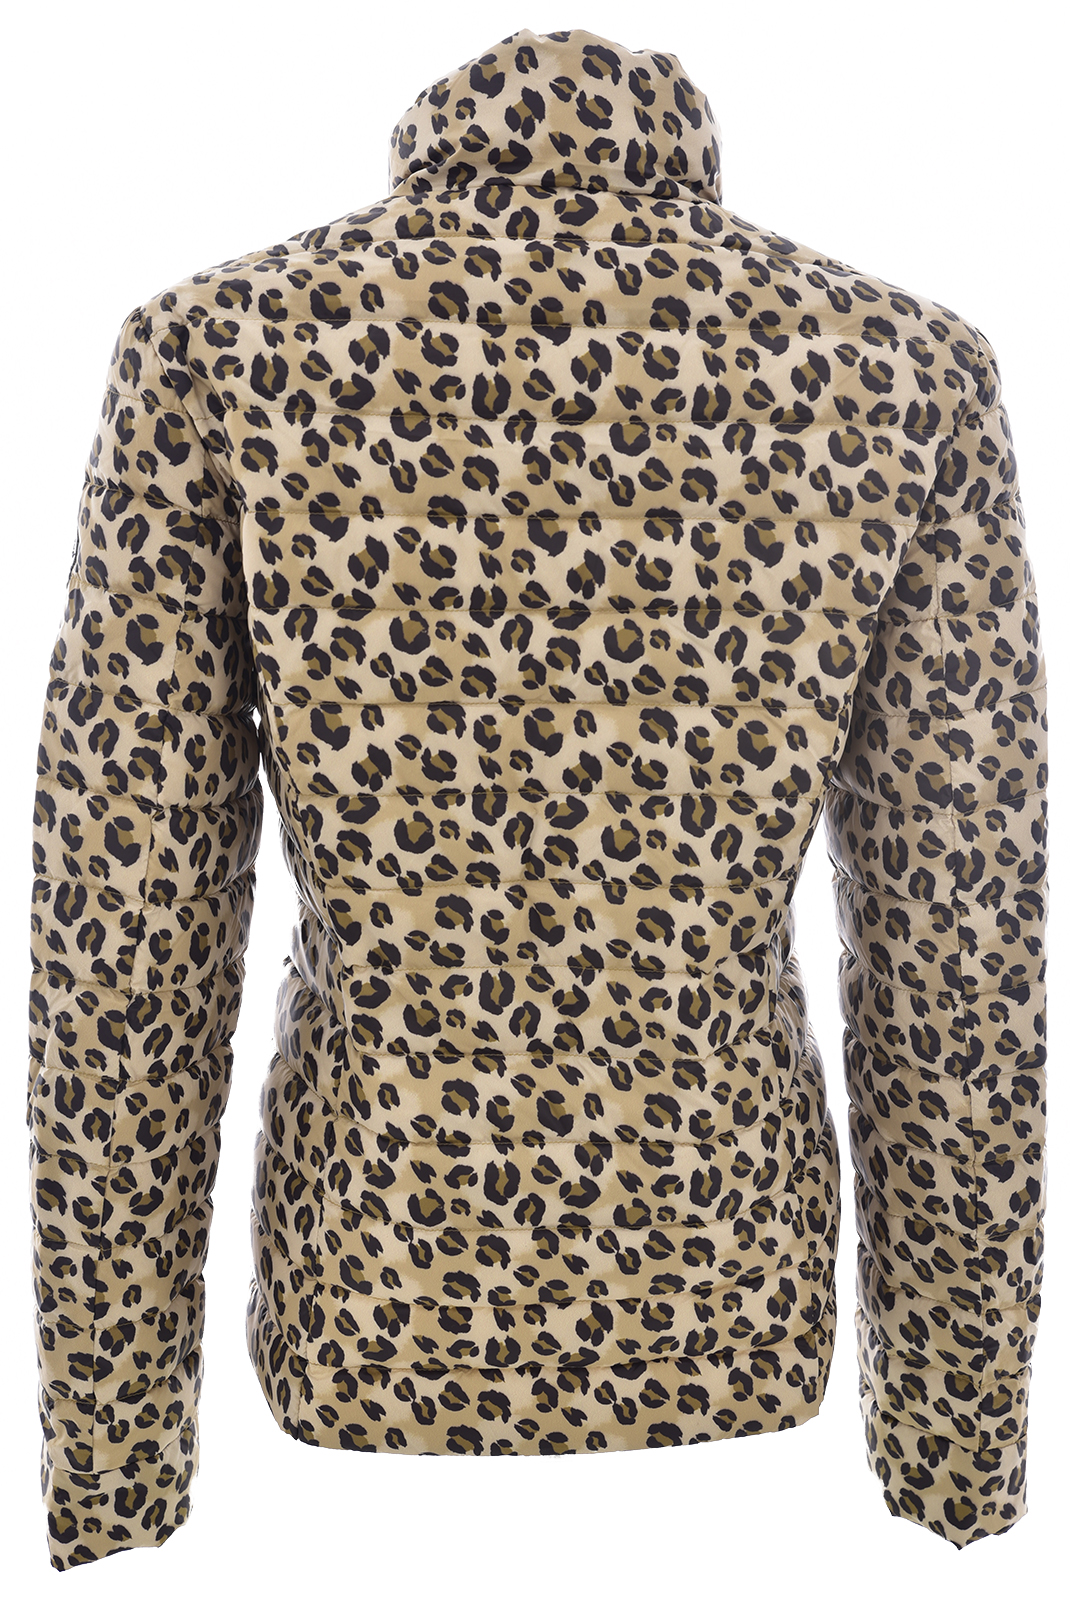 Blouson  Just over the top CHA 963 LEOPARD